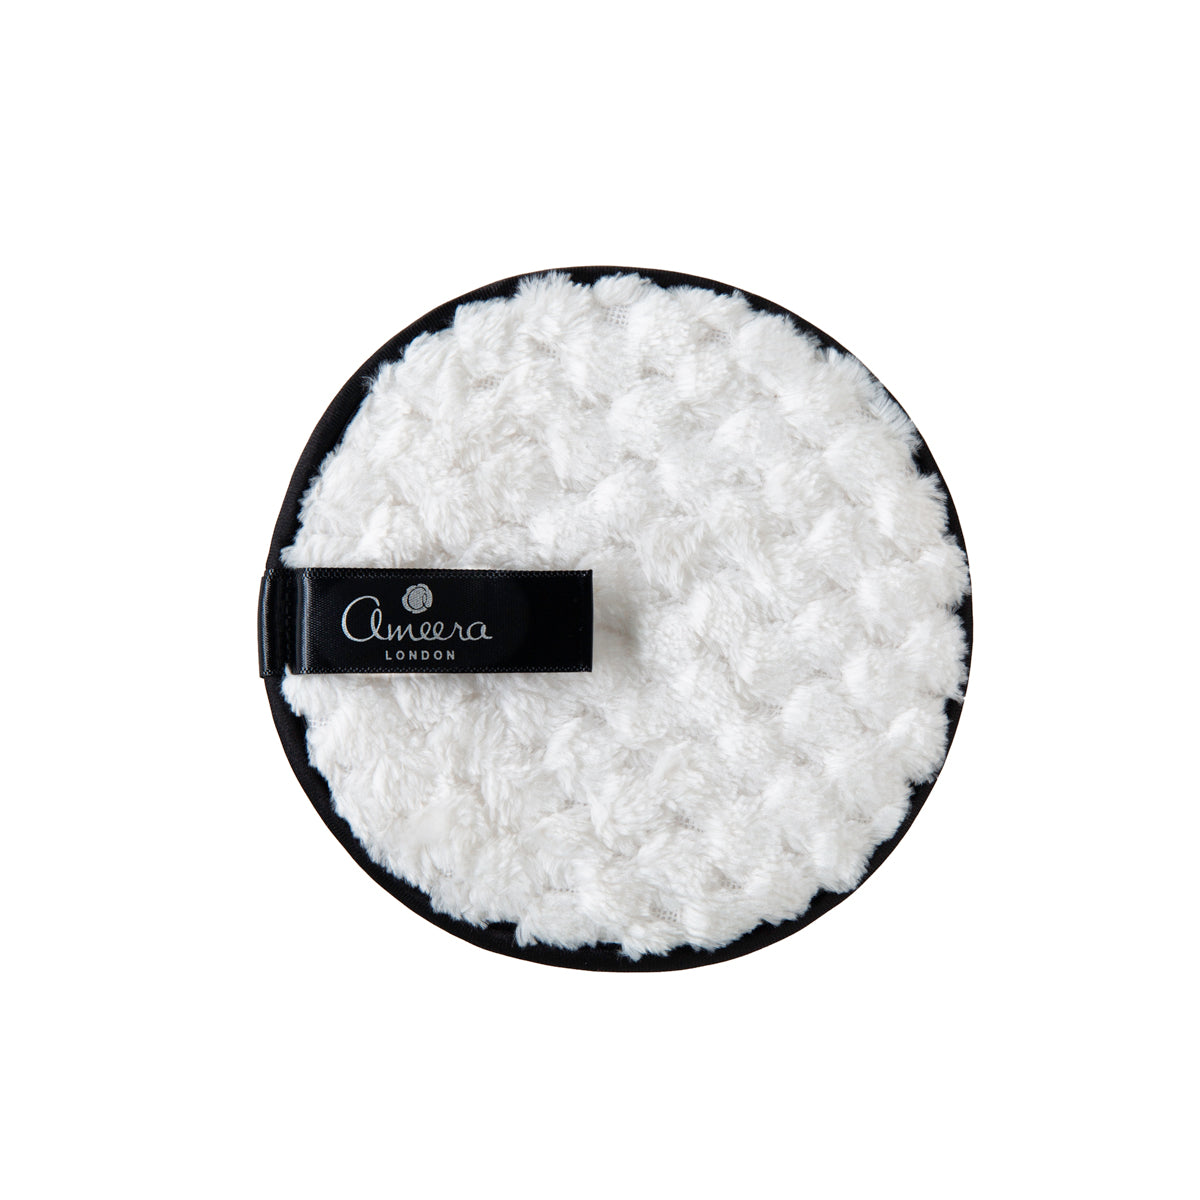 Ameera London's makeup remover pad quickly and easily removes makeup, with It's micro fiber cloth and some pure Rose water or our Liquid Gold pure Argan oil, or water only. It;s non-toxic , reusable and alternative source to wipes. It replaces up to 500 single-use makeup wipes.No need to scrub or rub, our makeup remover pad is perfect for sensitive and Blemish-prone skin.